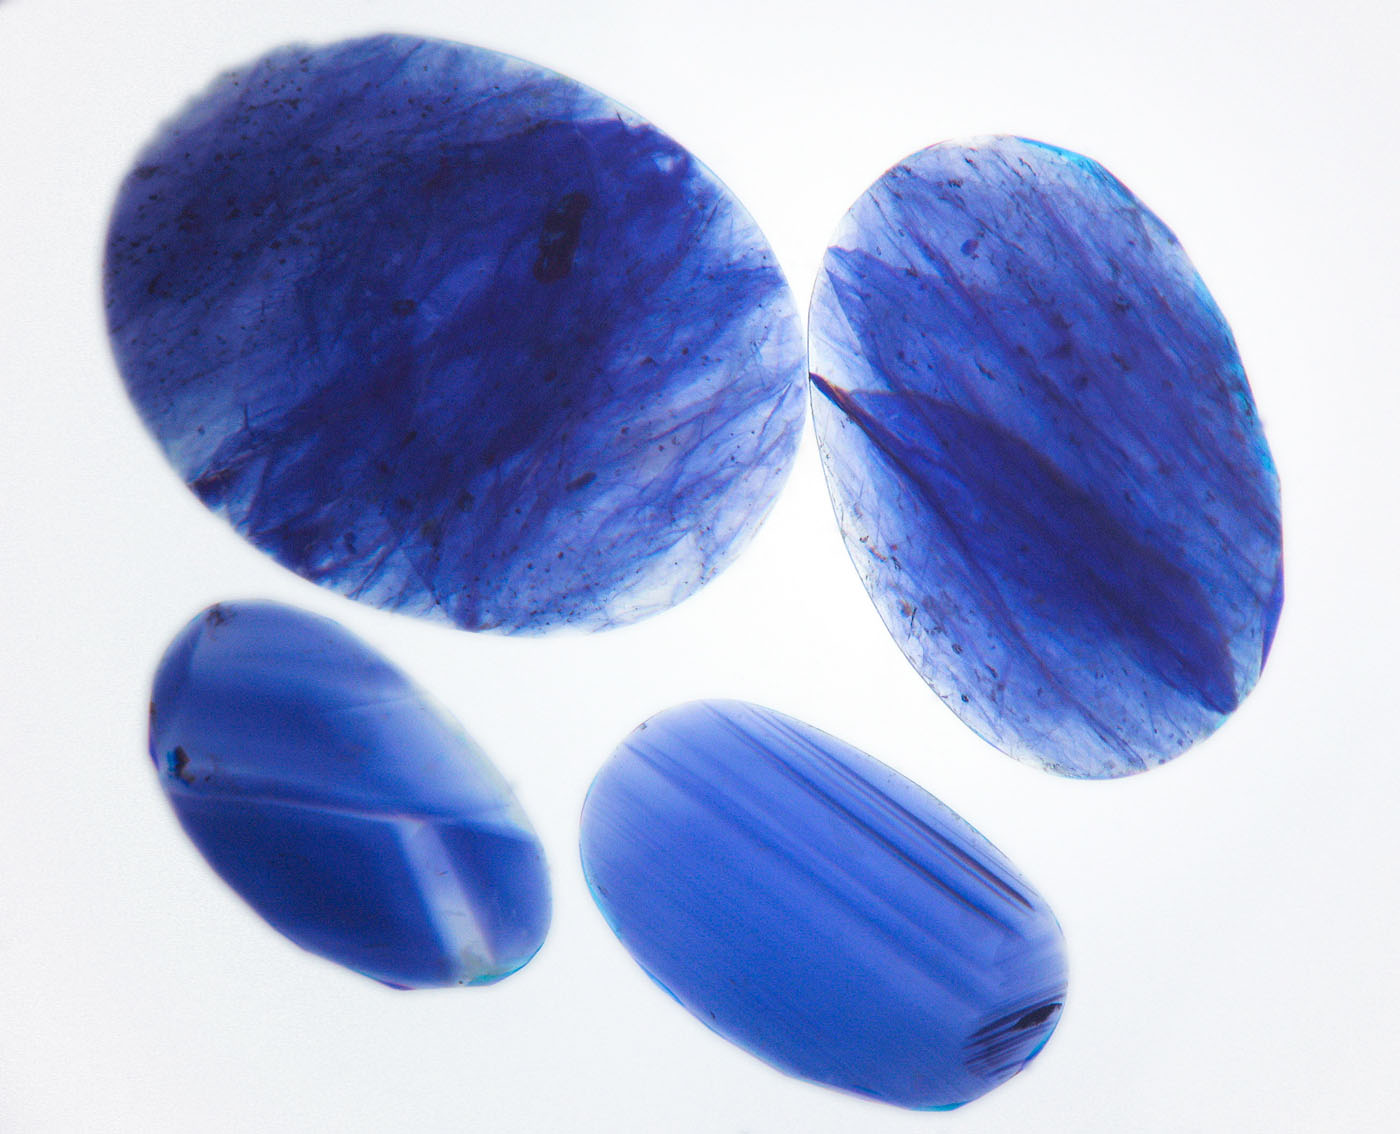 Figure 12. Immersion in di-iodomethane (methylene iodide) in diffuse light-field illumination quickly reveals the blue color concentrations in the cobalt-glass filled sapphires (top two stones), whereas natural sapphires show angular color zoning (lower two stones). Image corrected to remove yellow color of liquid. Photo: Wimon Manorotkul